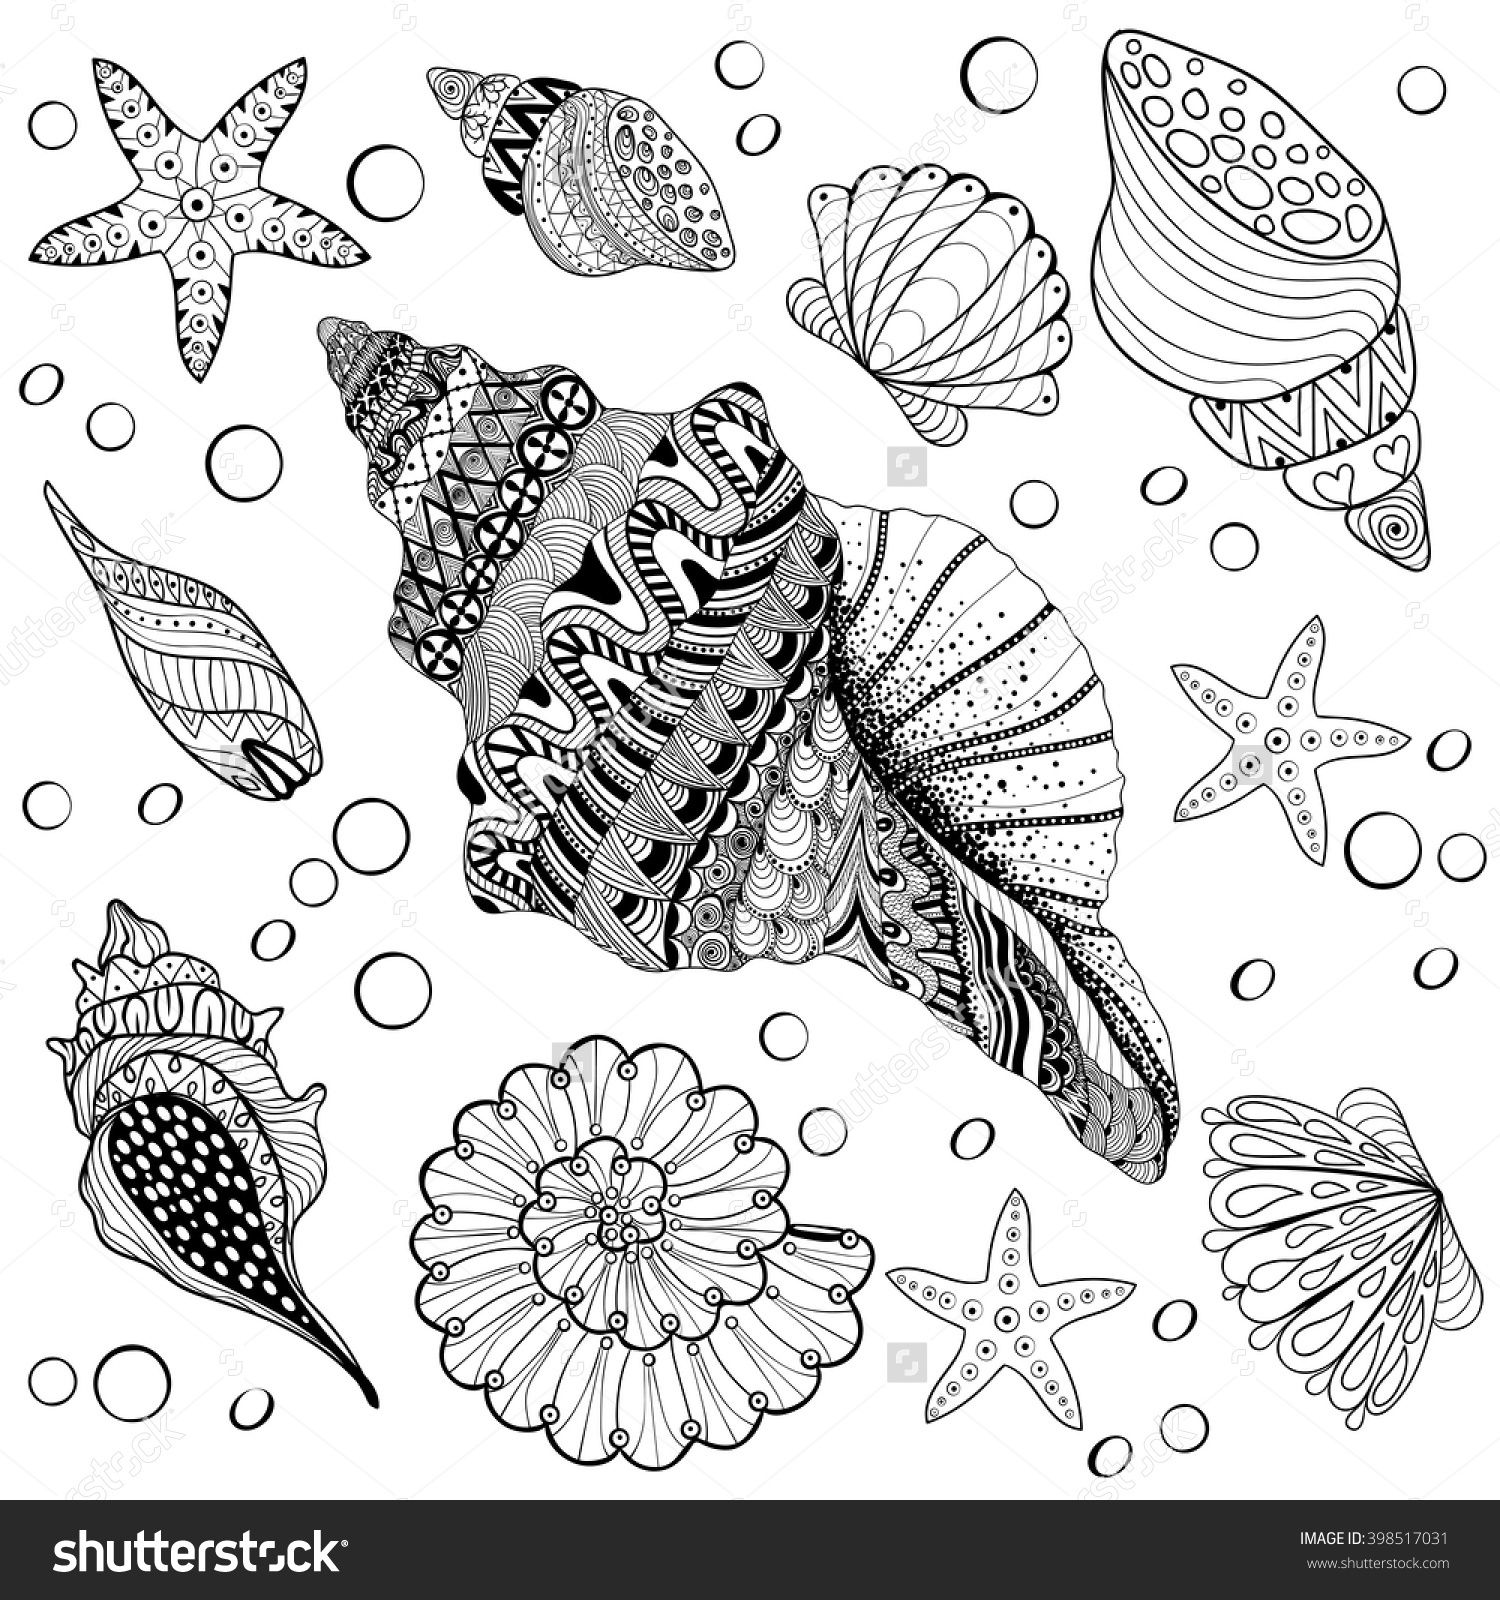 Pin On Under The Sea Fish Mermaids Shells Colouring Coloring Pages